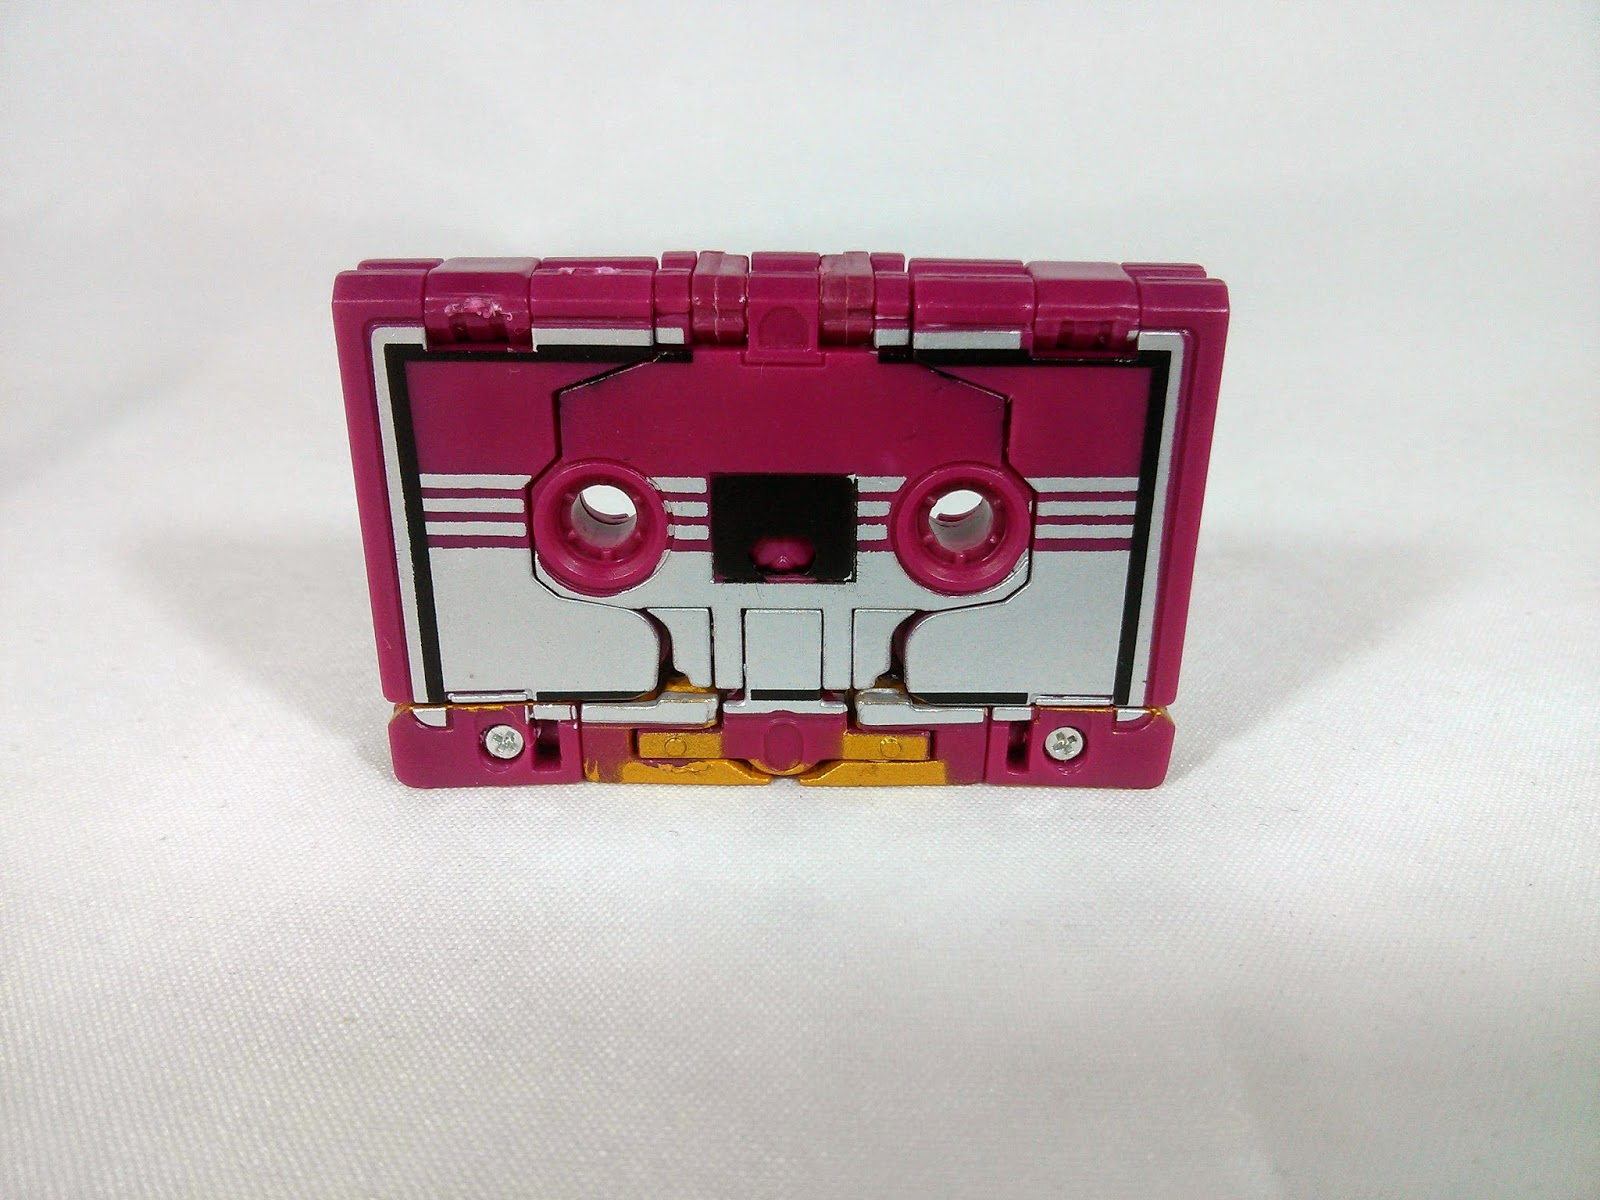 masterpiece ratbat in tape mode